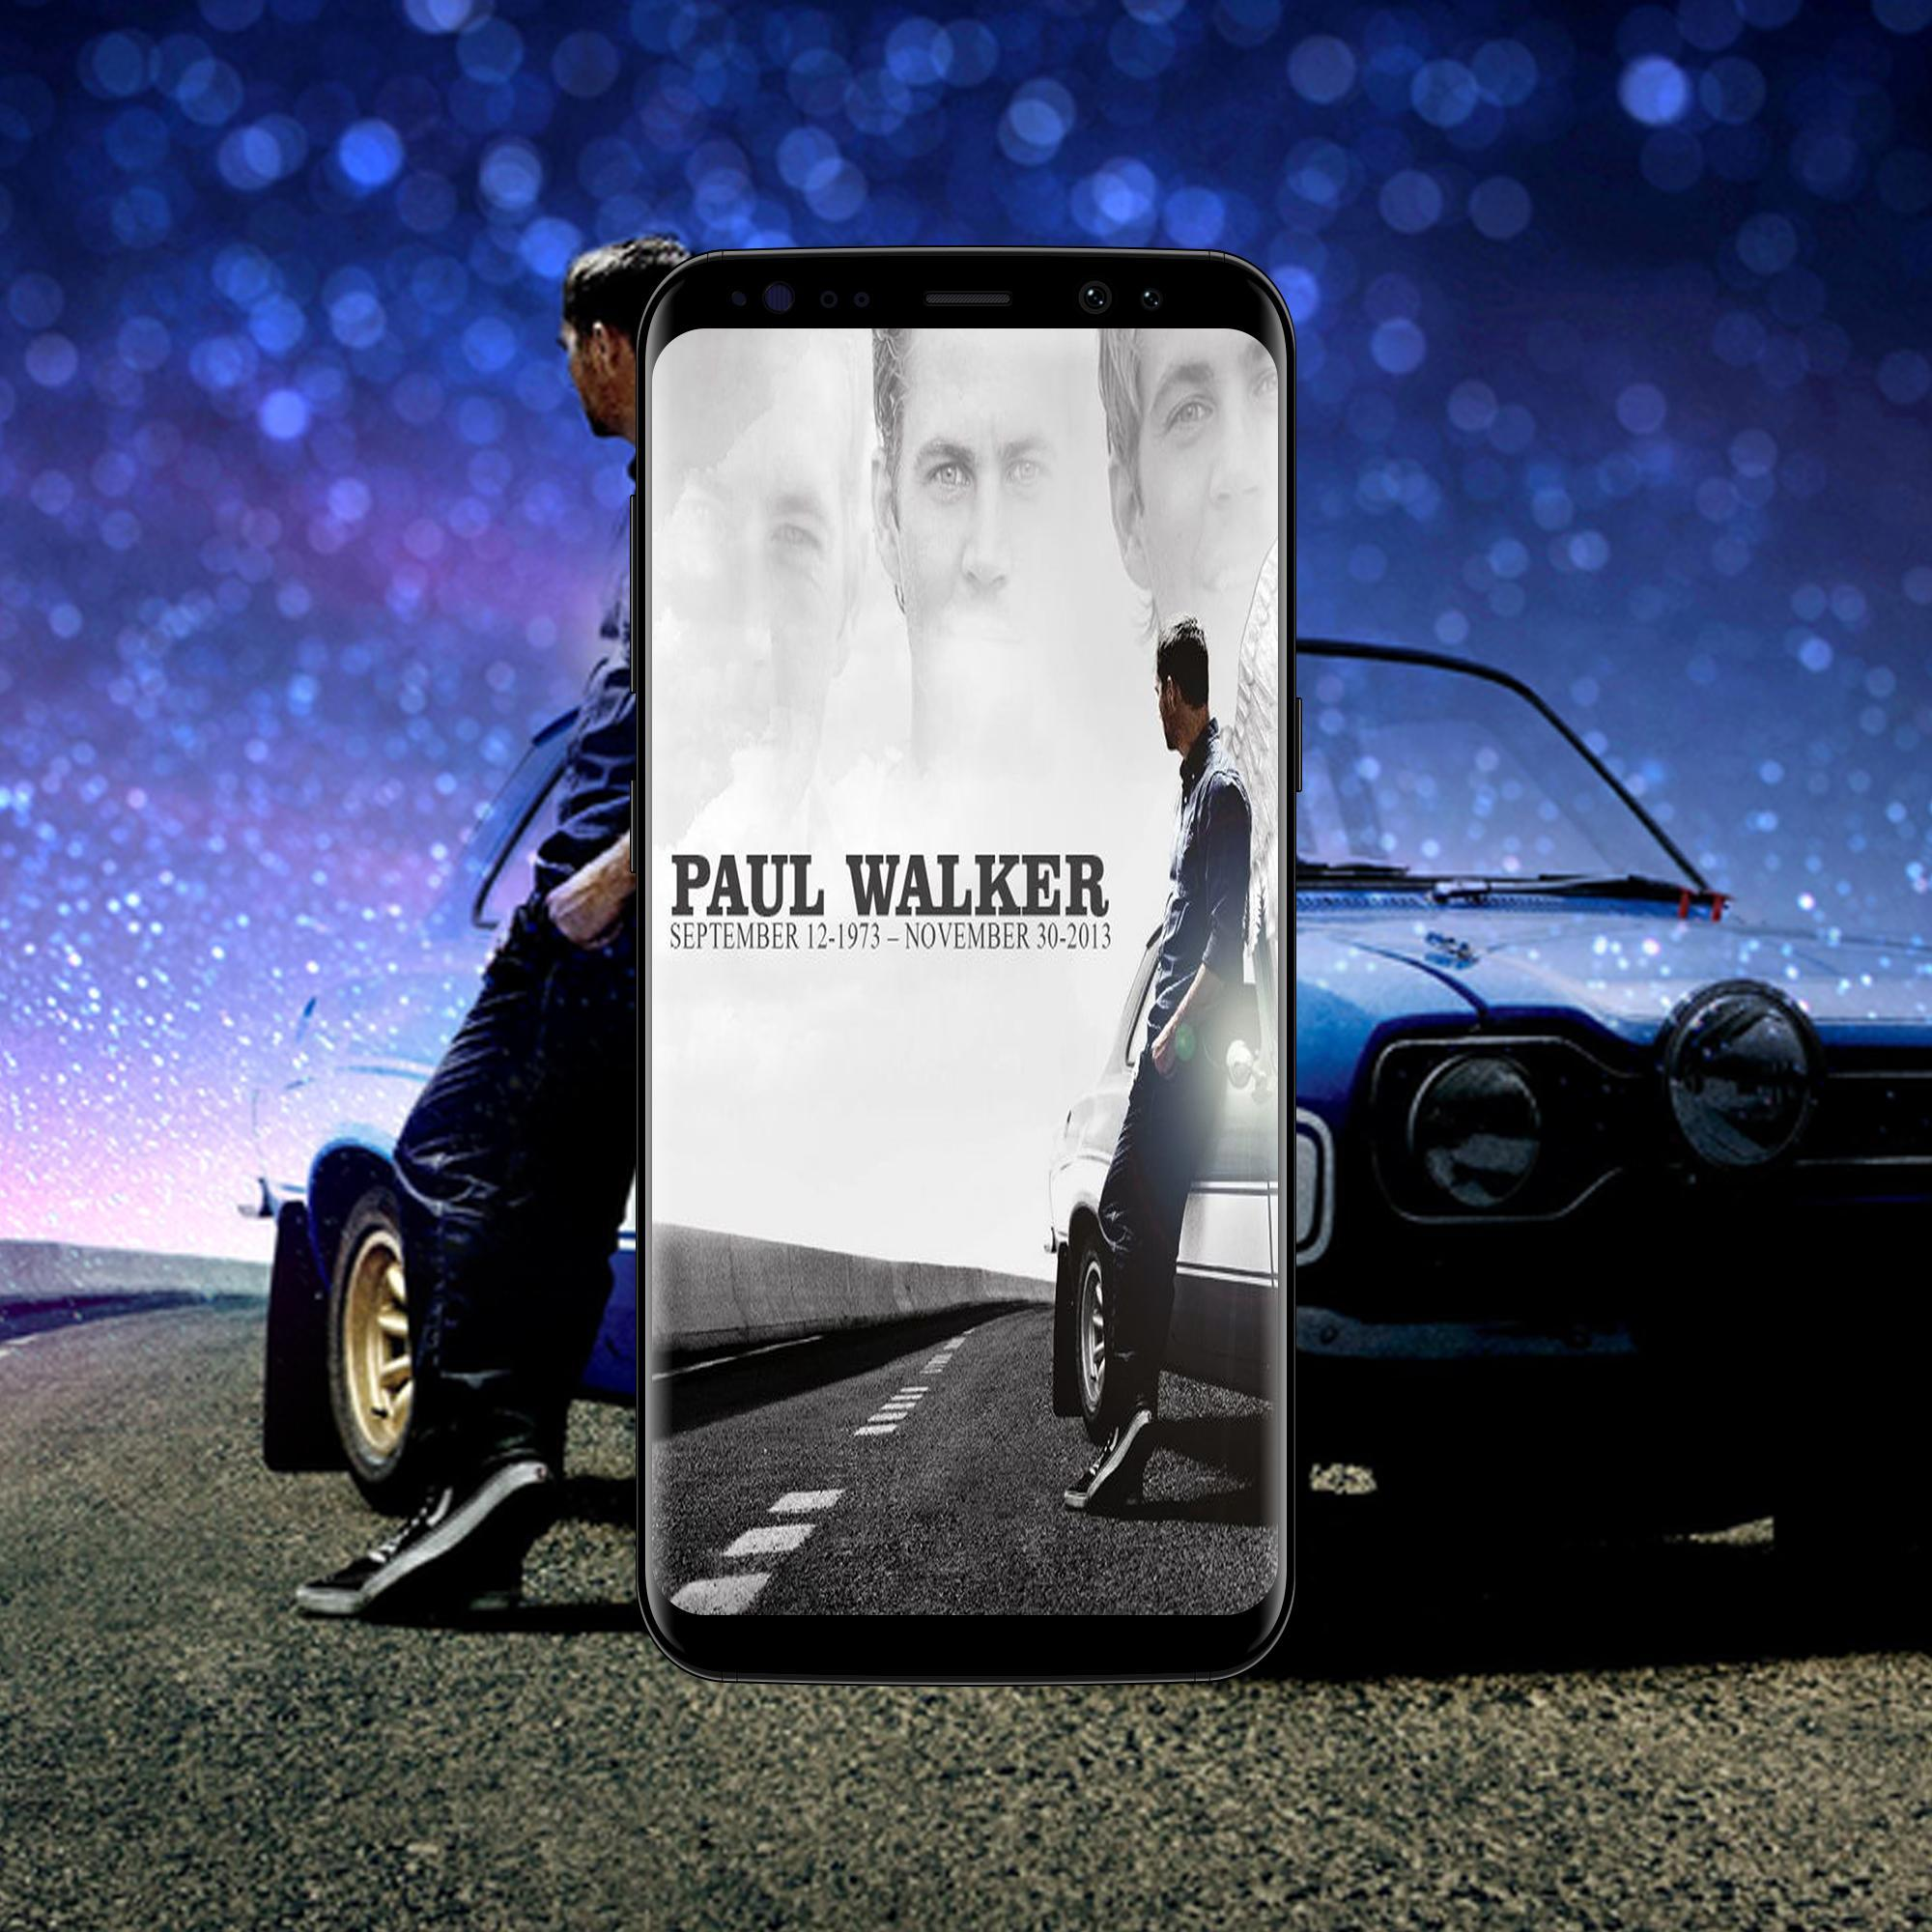 Paul Walker Wallpaper For Android Apk Download